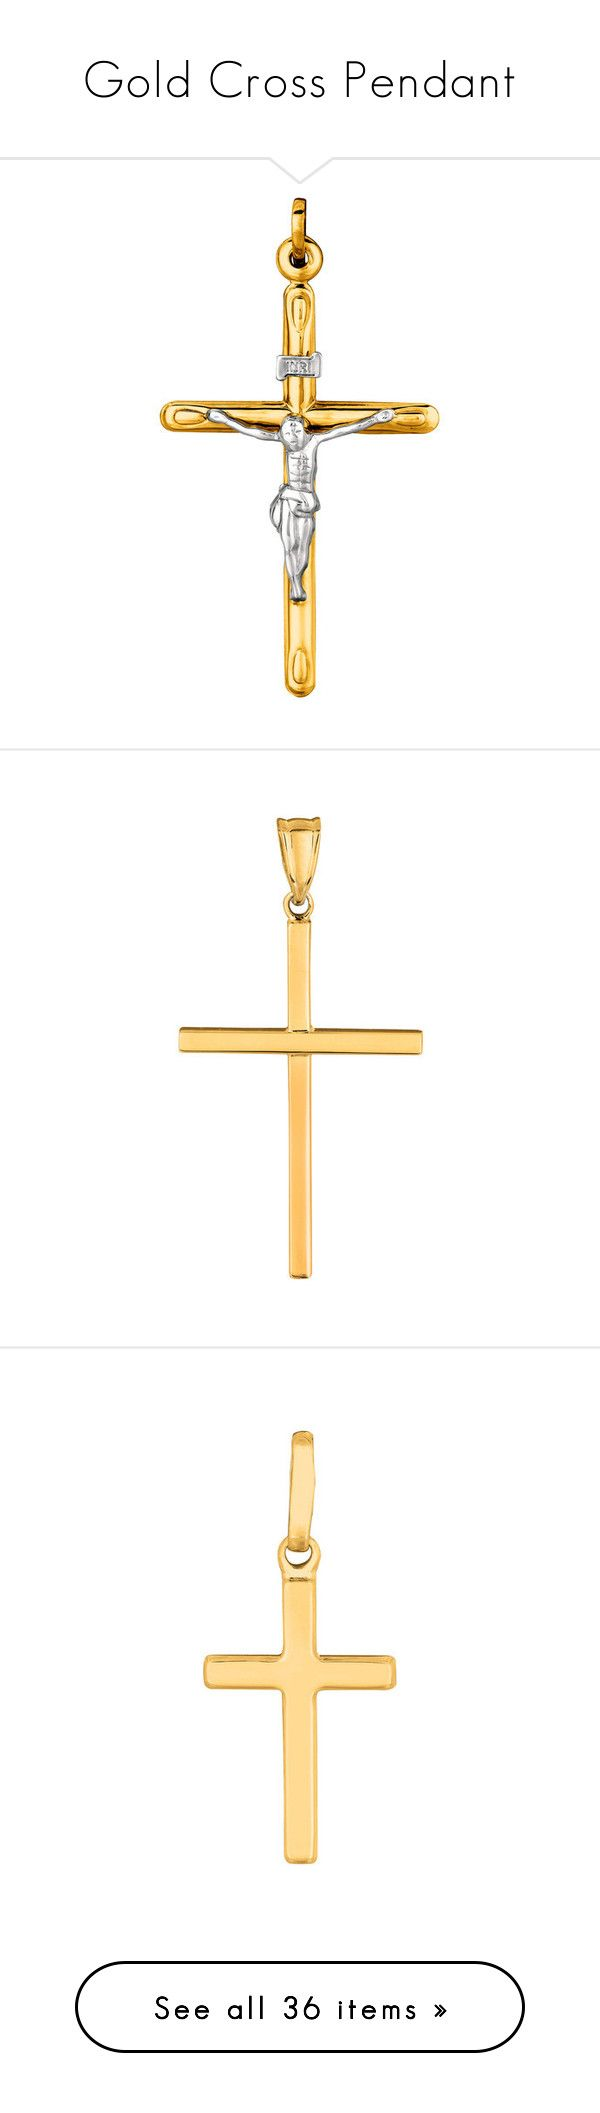 """Gold Cross Pendant"" by jewelryaffairs ❤ liked on Polyvore featuring cross, crosspendant, goldcross, jewelry, round gold pendant, 14 karat gold pendants, 14k jewelry, yellow gold jewelry, gold pendant jewelry and pendants"